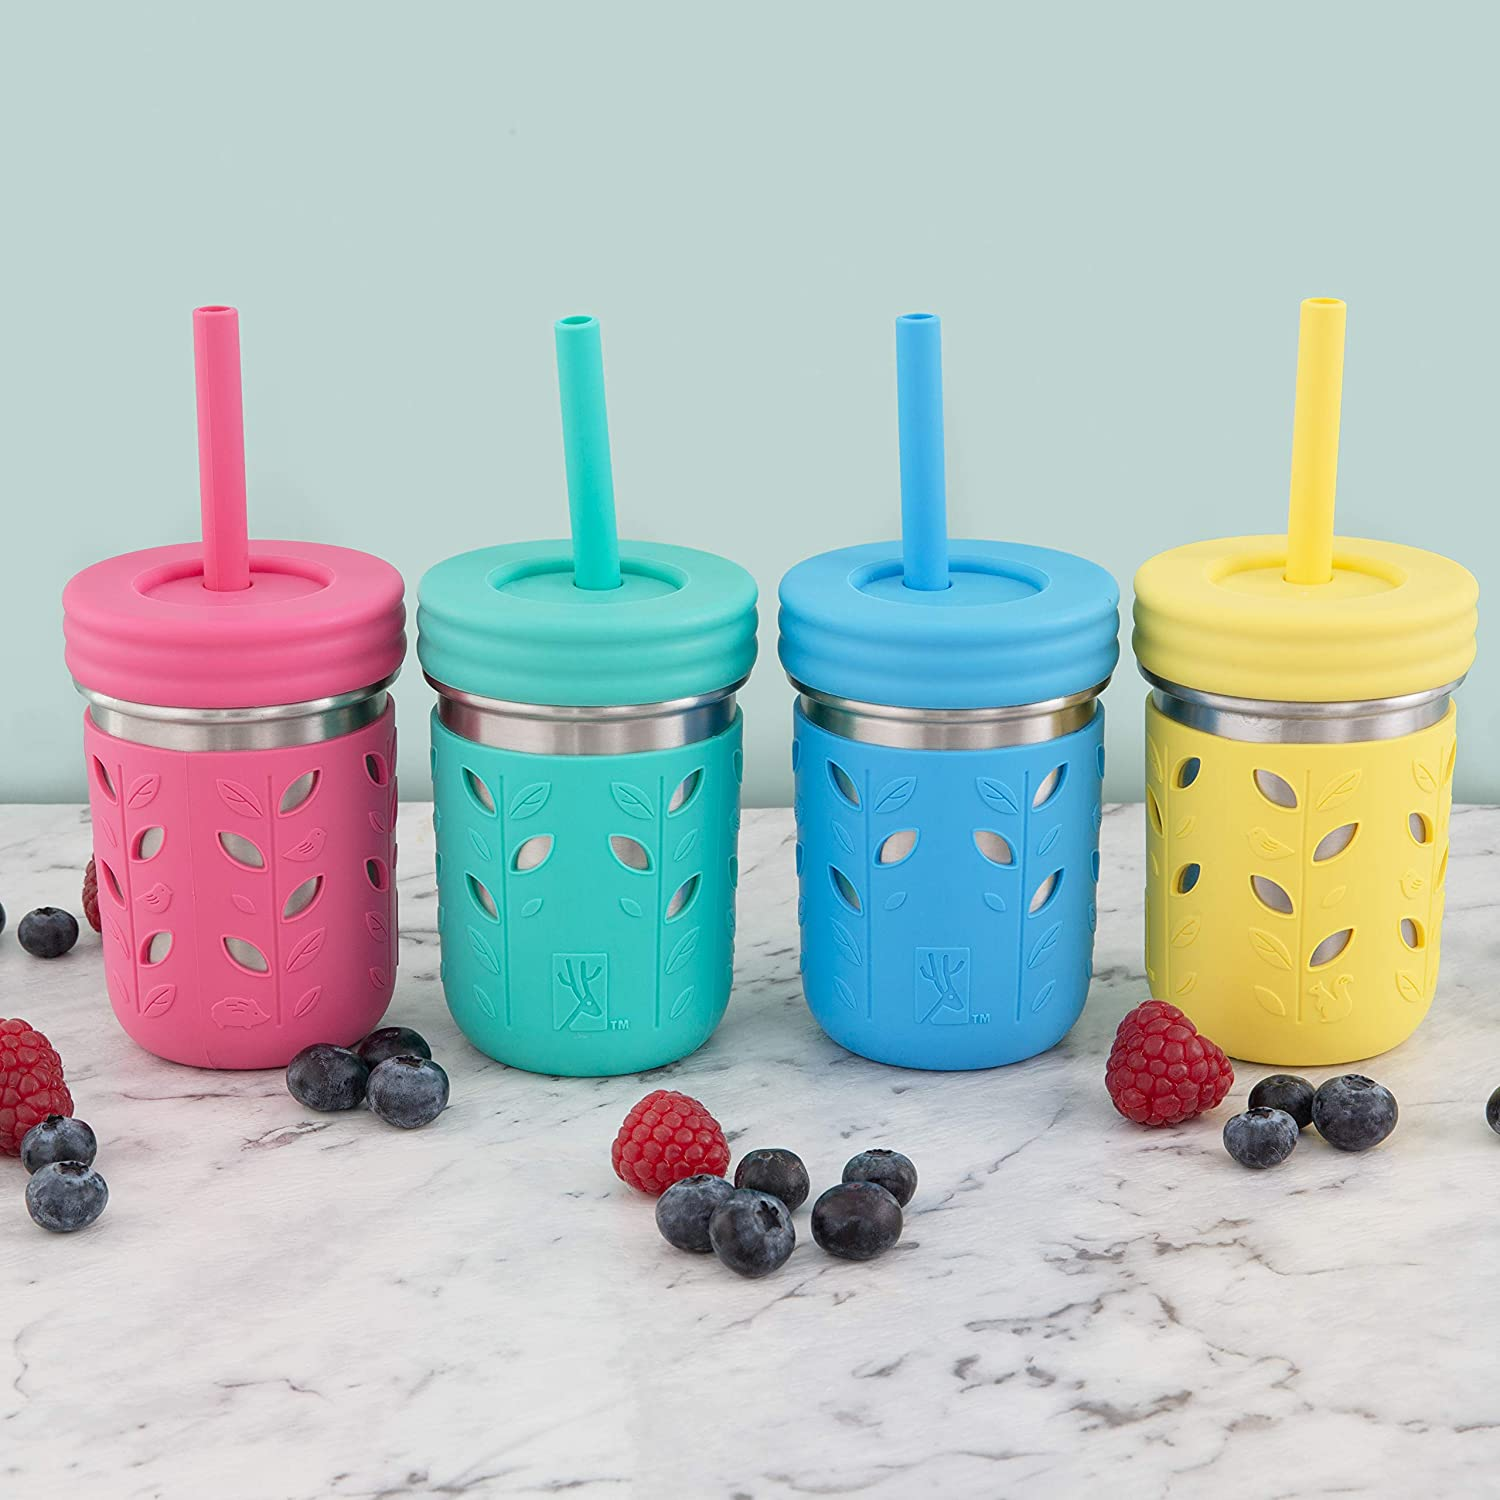 Mason Jar 10oz Sippy Cups Kids /& Toddler Cups with Silicone Sleeves /& Silicone Straws with Stopper Elk and Friends Stainless Steel Cups Spill Proof Cups for Kids Smoothie Cups